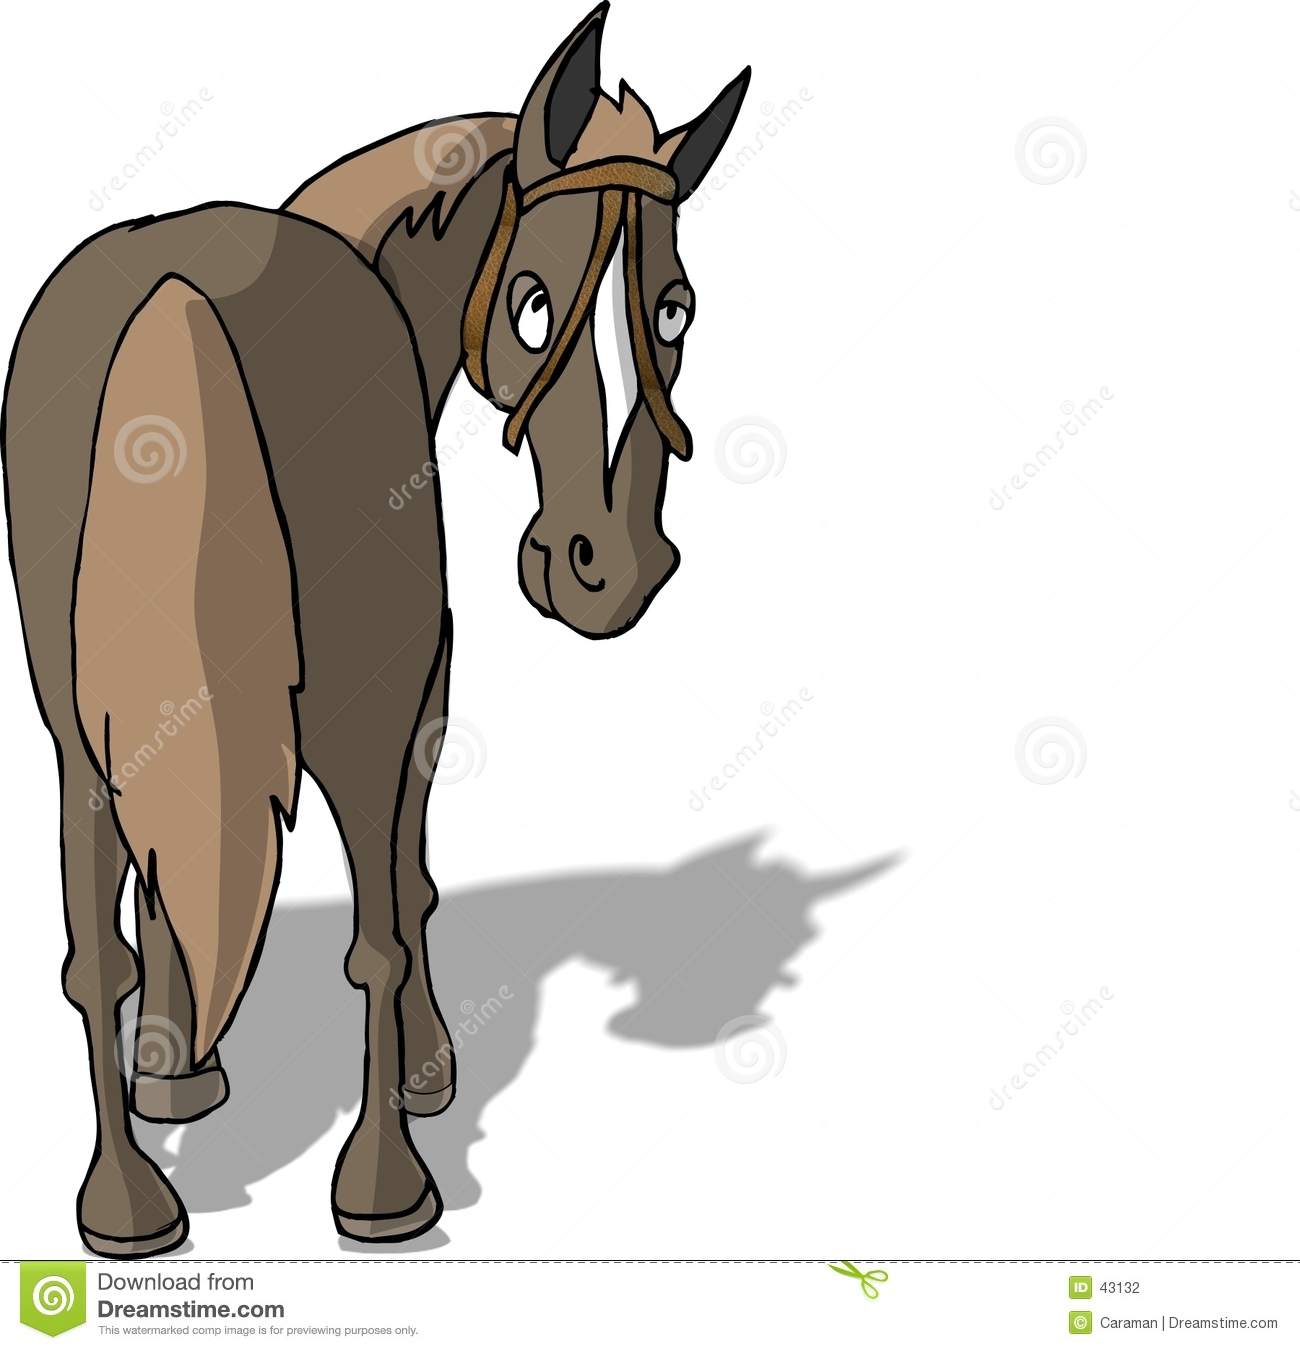 Horse s back